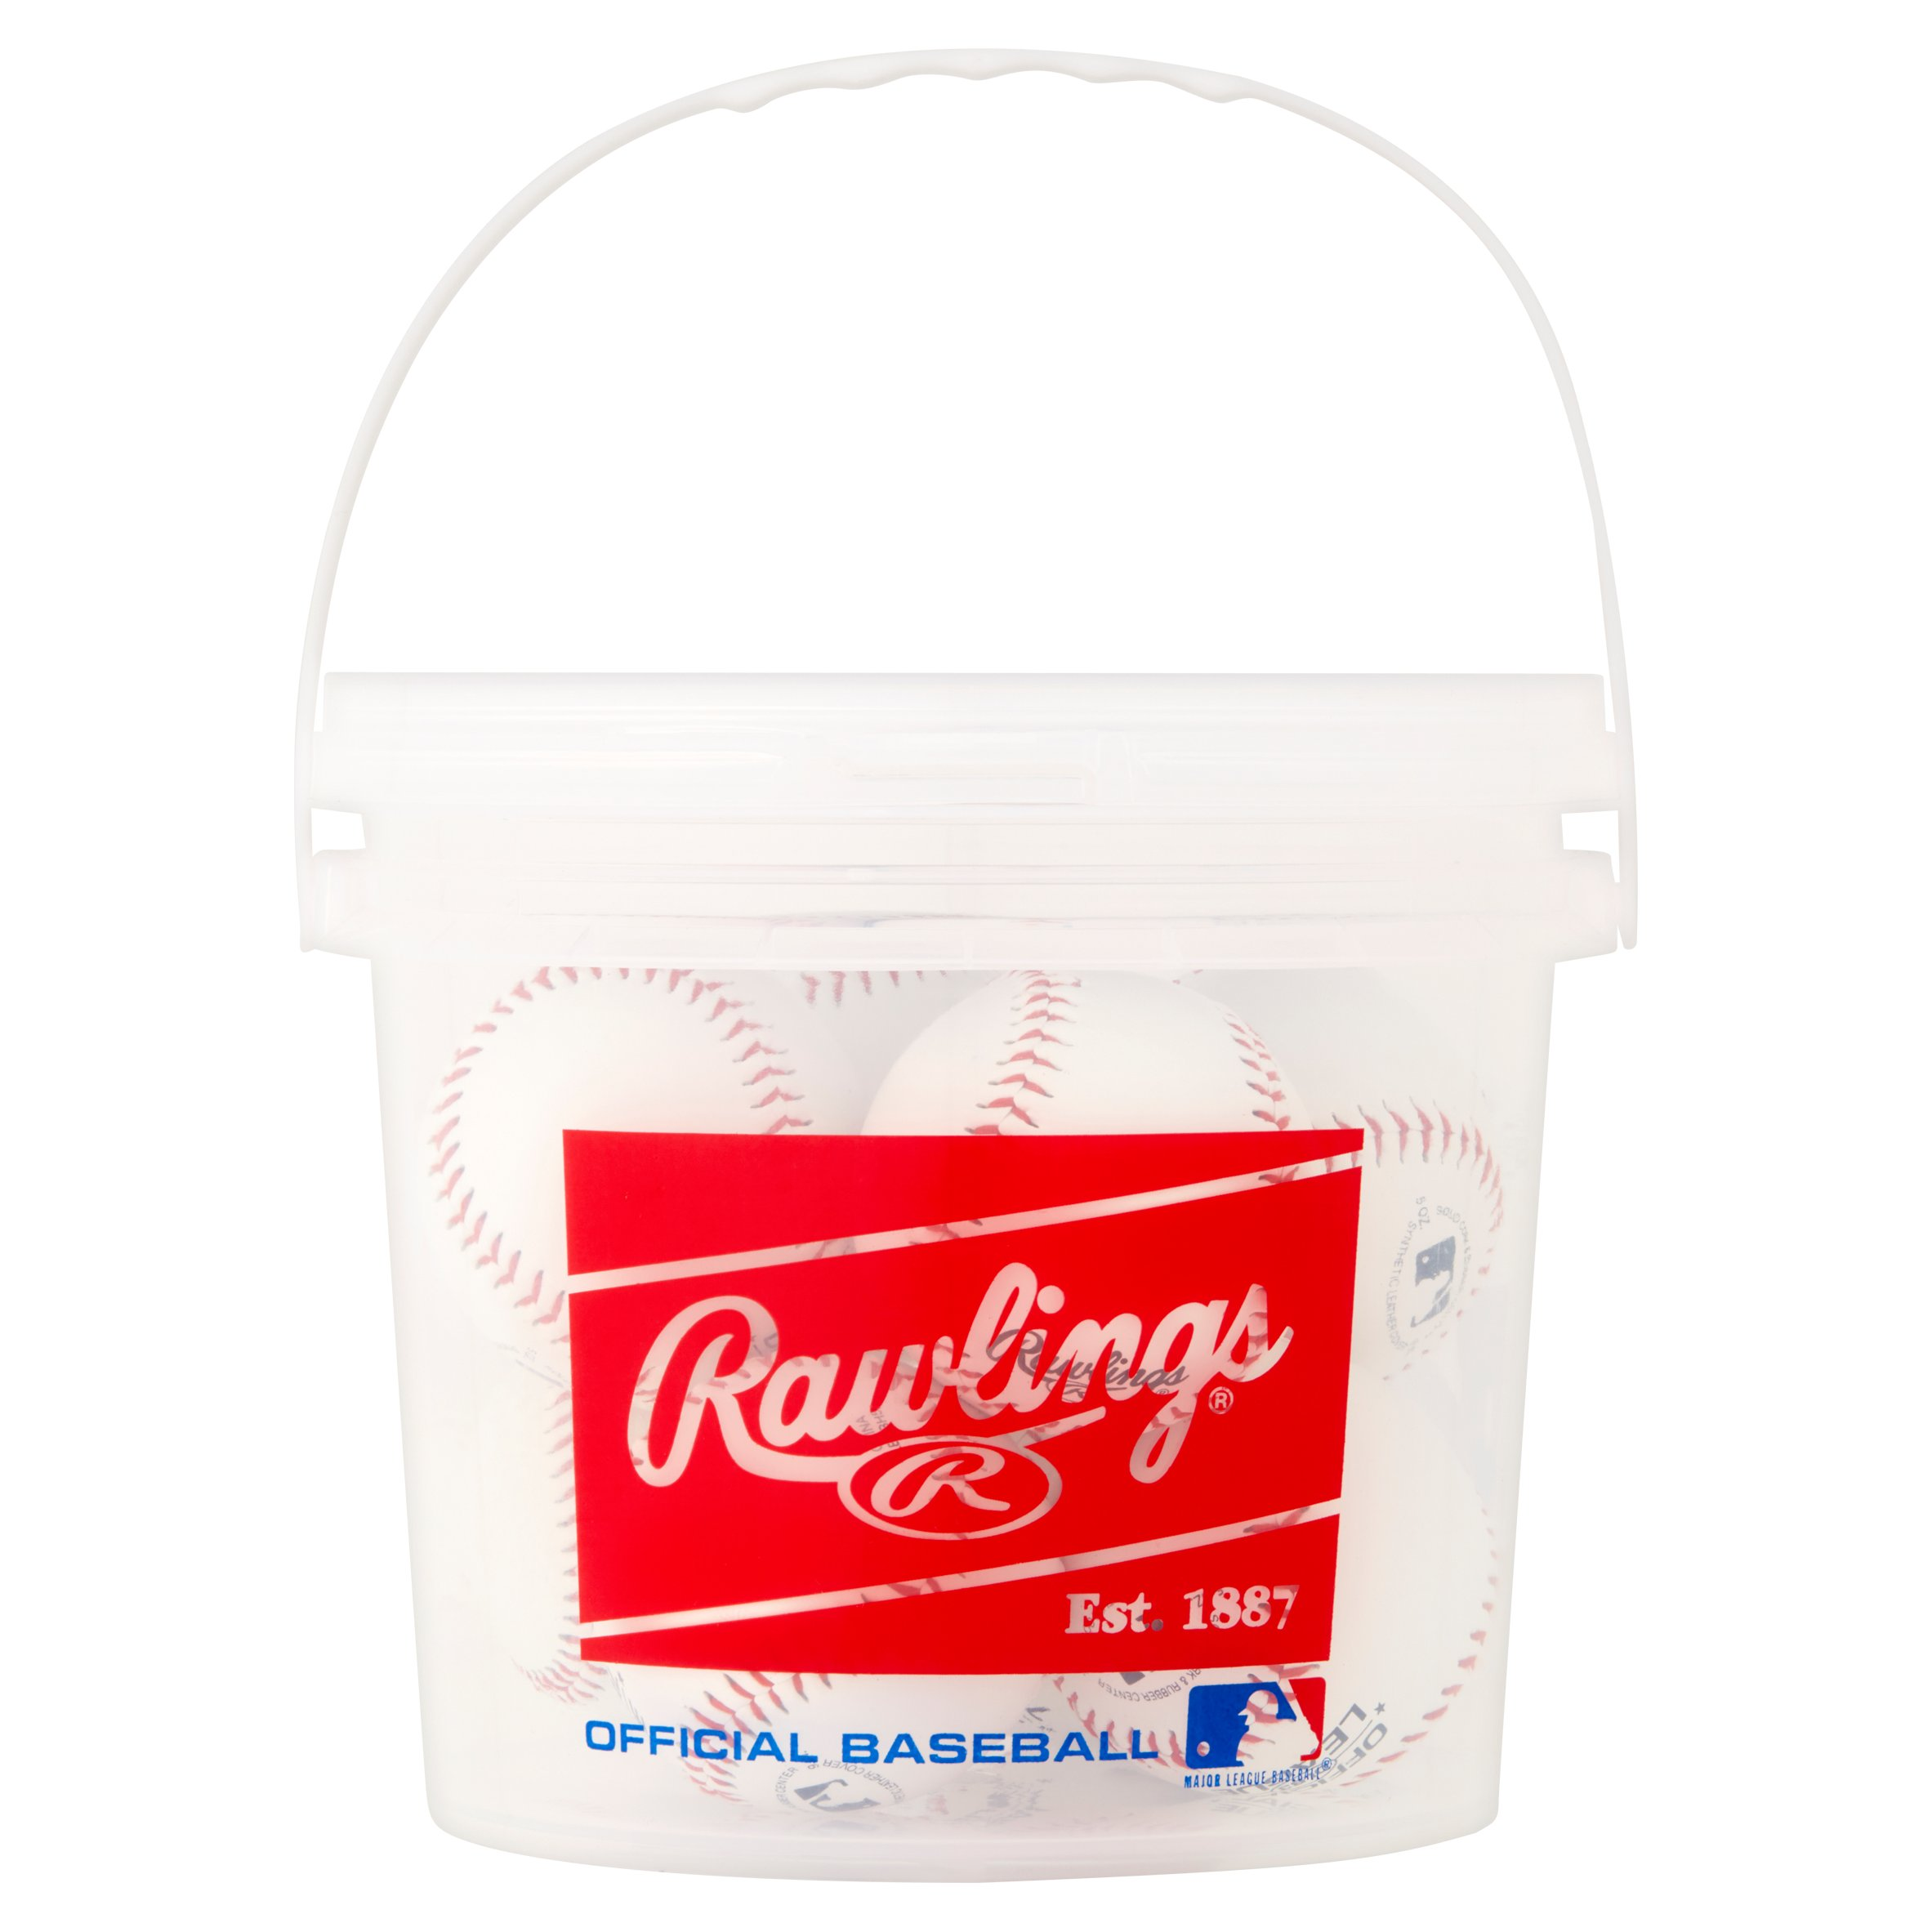 Rawlings Recreational Baseballs Ages 8 & Under